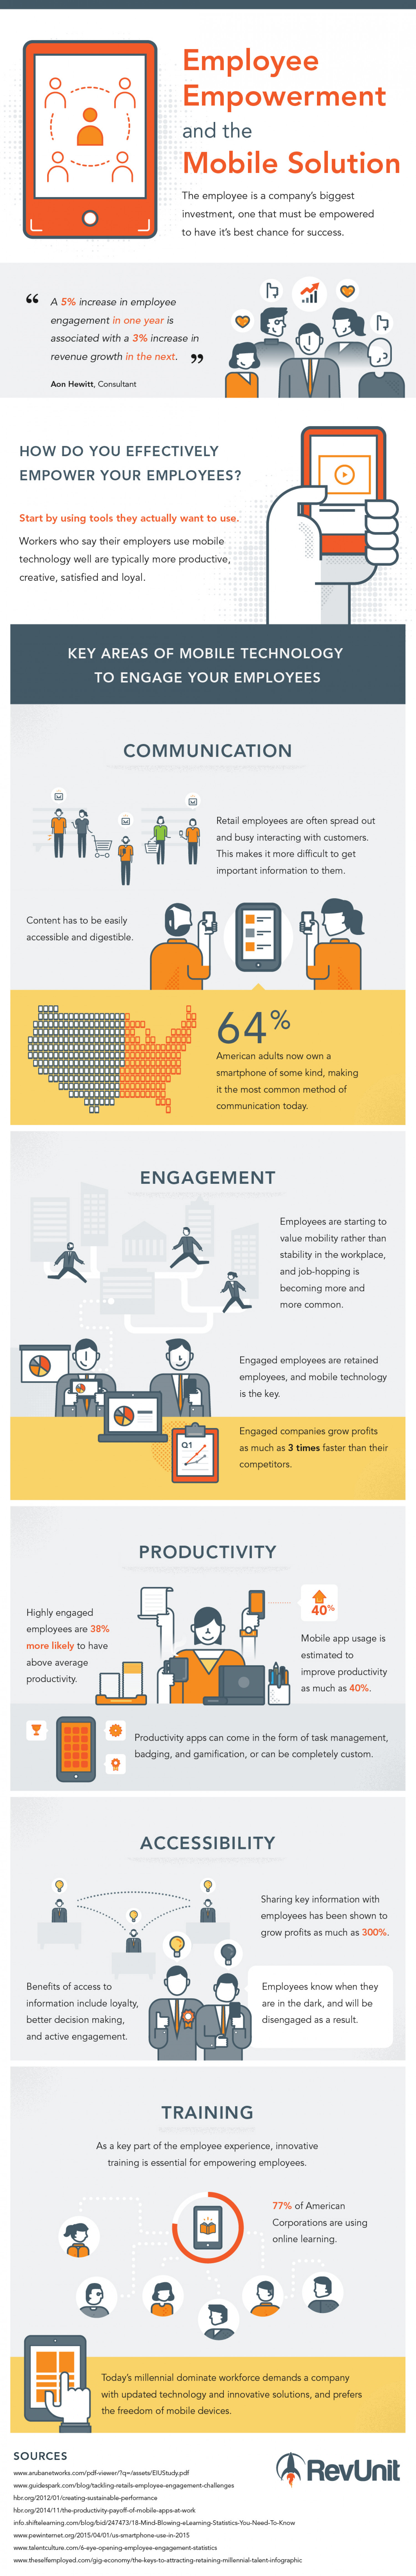 Employee Empowerment and The Mobile Solution  Infographic